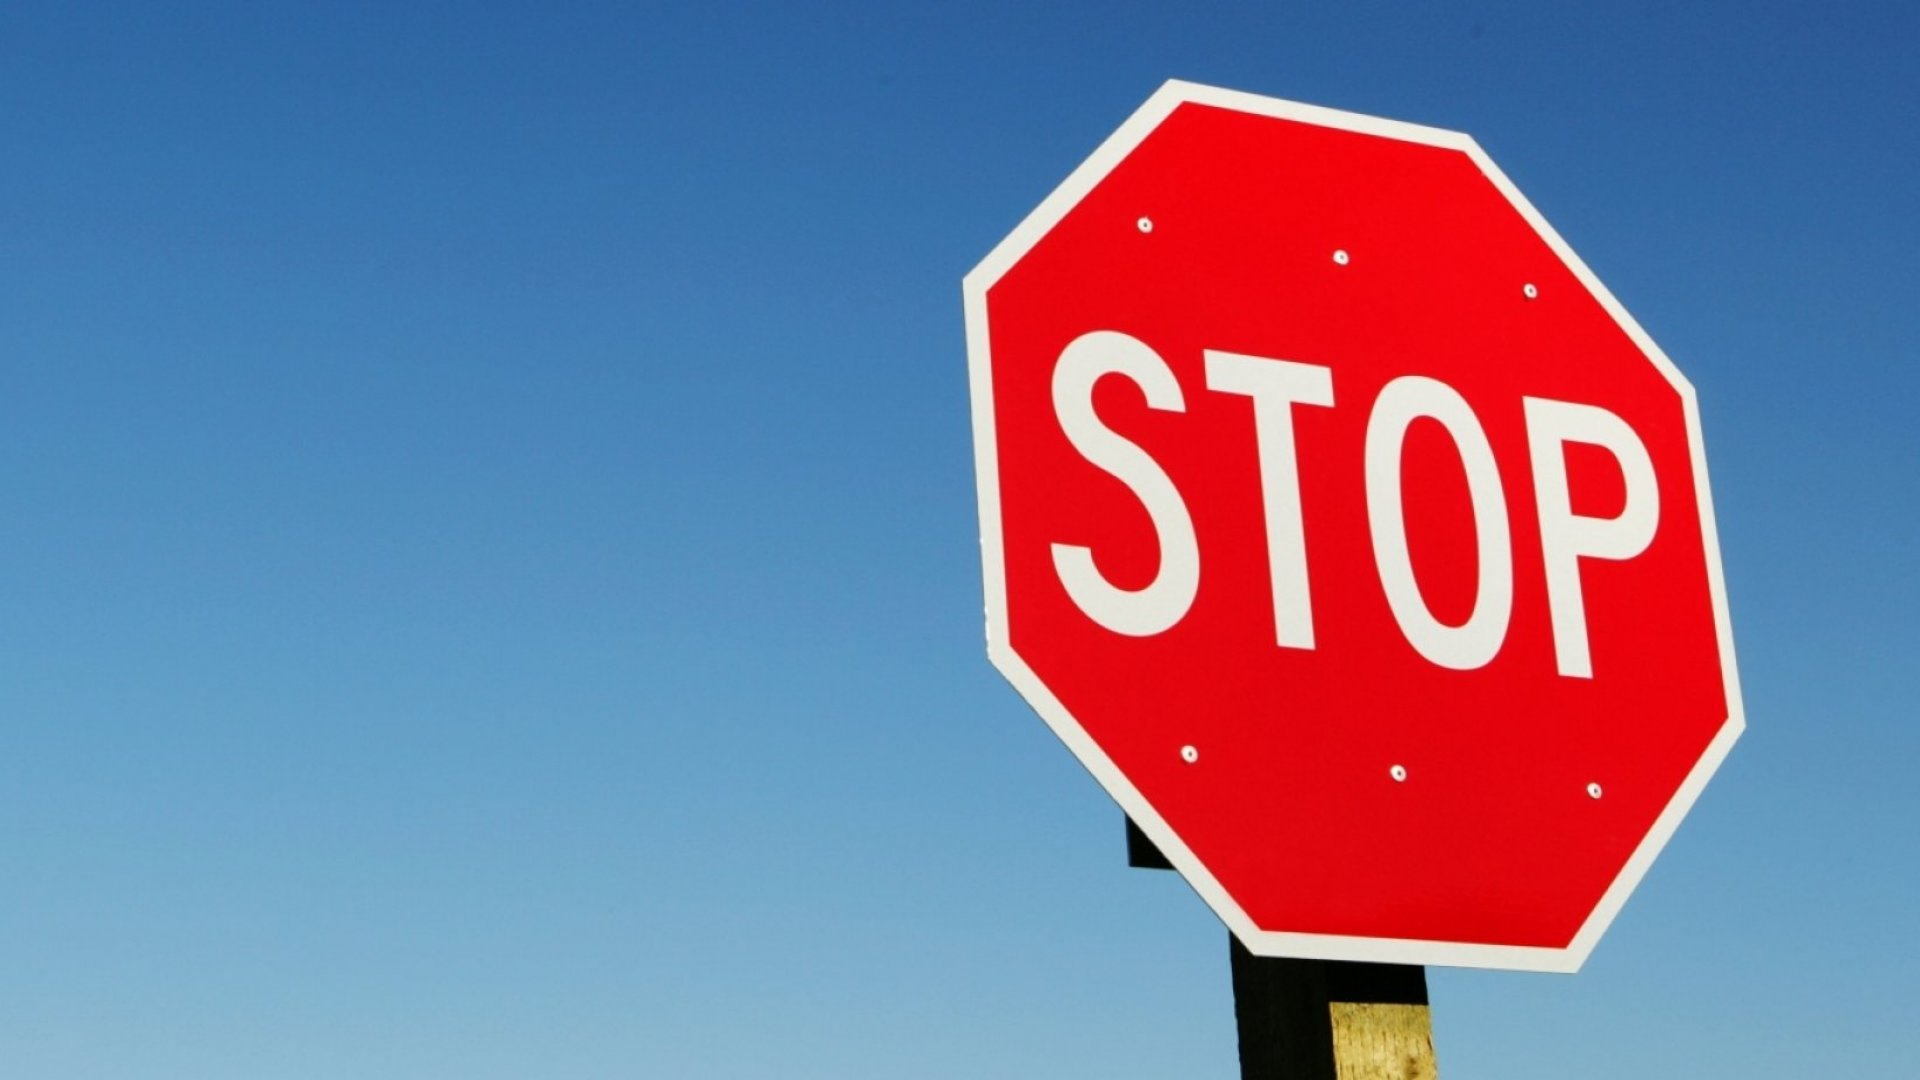 16 Things Entrepreneurs Should Stop Doing (to Avoid Looking Like Amateurs)